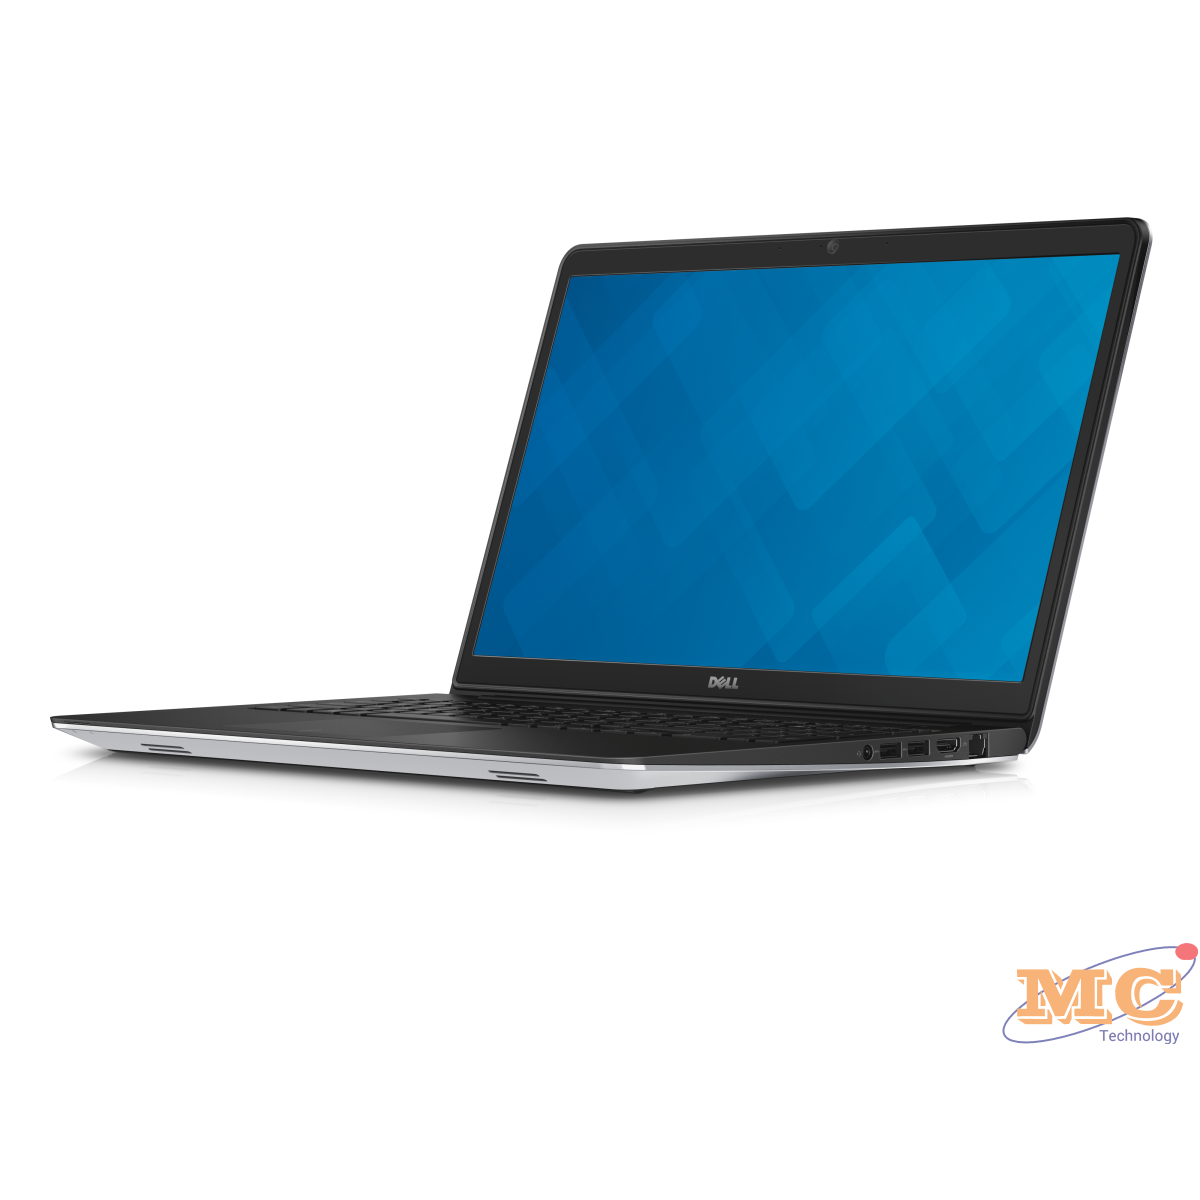 Dell Inspiron 15R 5547 (Intel Core i5-4210U)